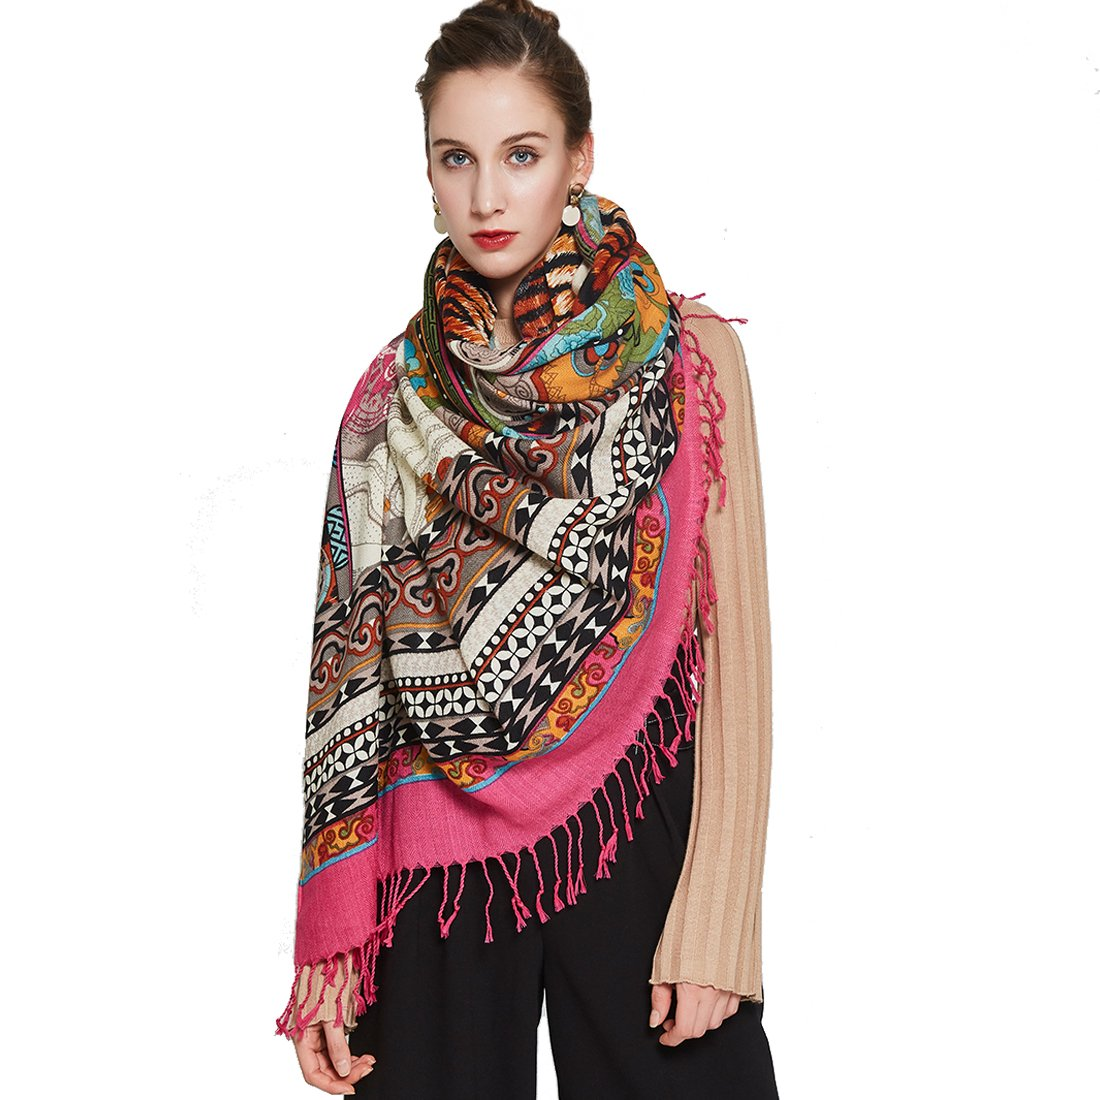 White DANA XU Pure Wool Ponchos Blanket for Women Large Pashmina Shawls and Wraps (Watermelon red)